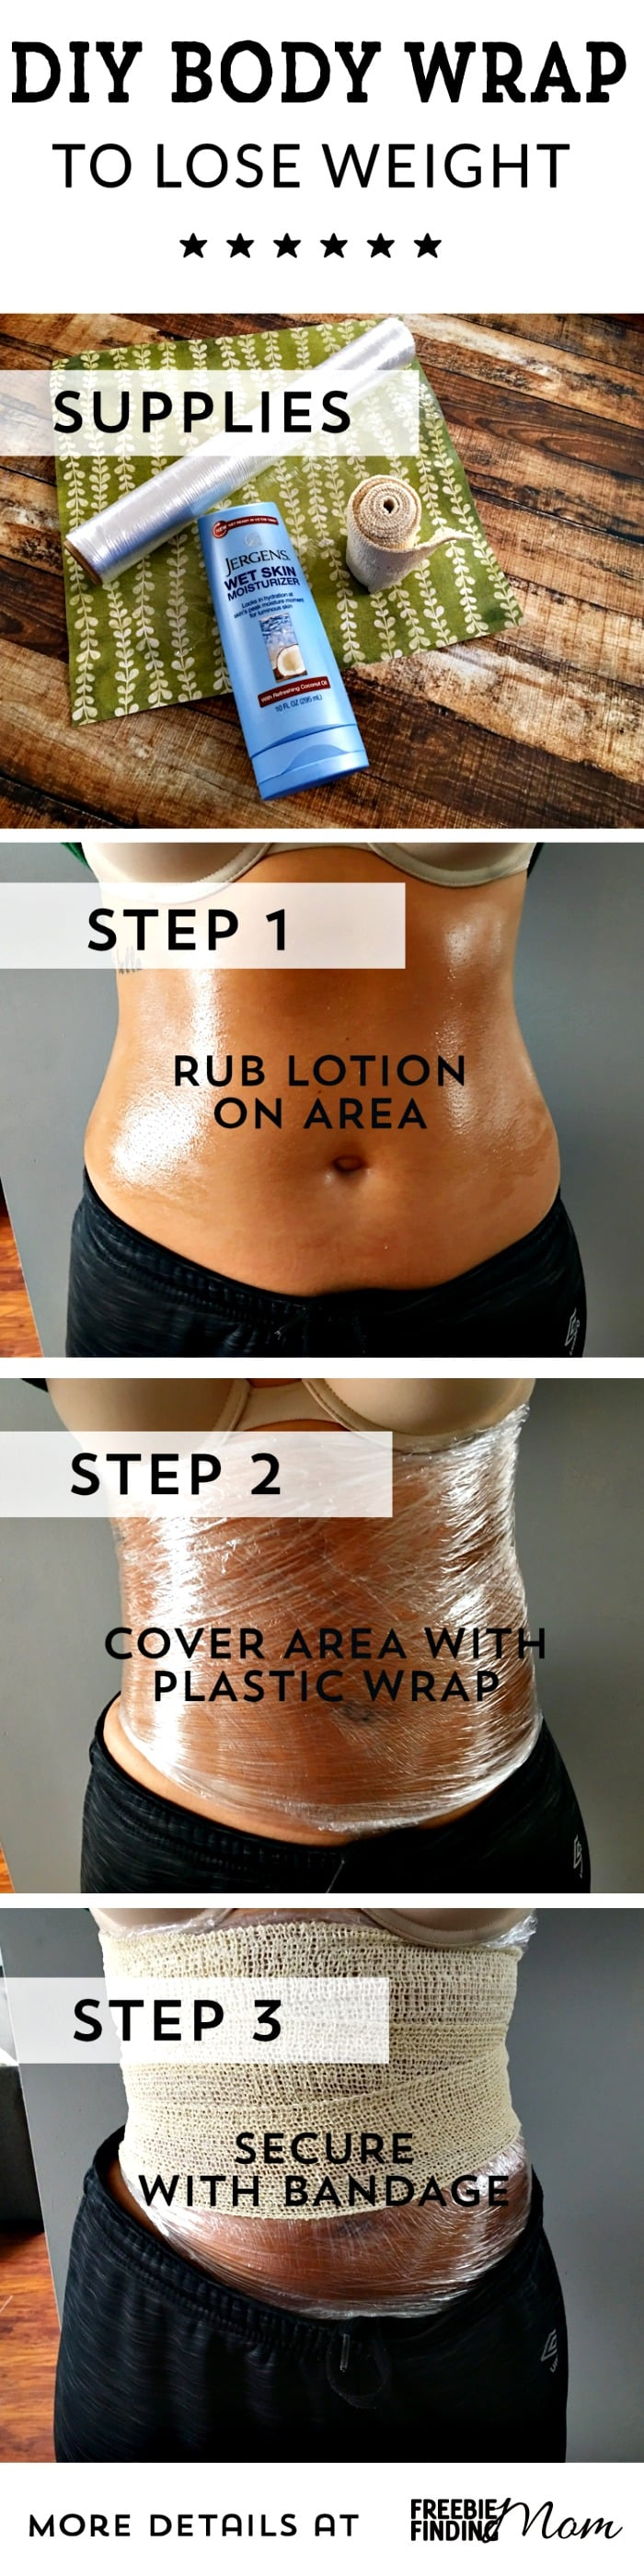 Diy Lose Weight Body Wraps To Shed Unwanted Pounds